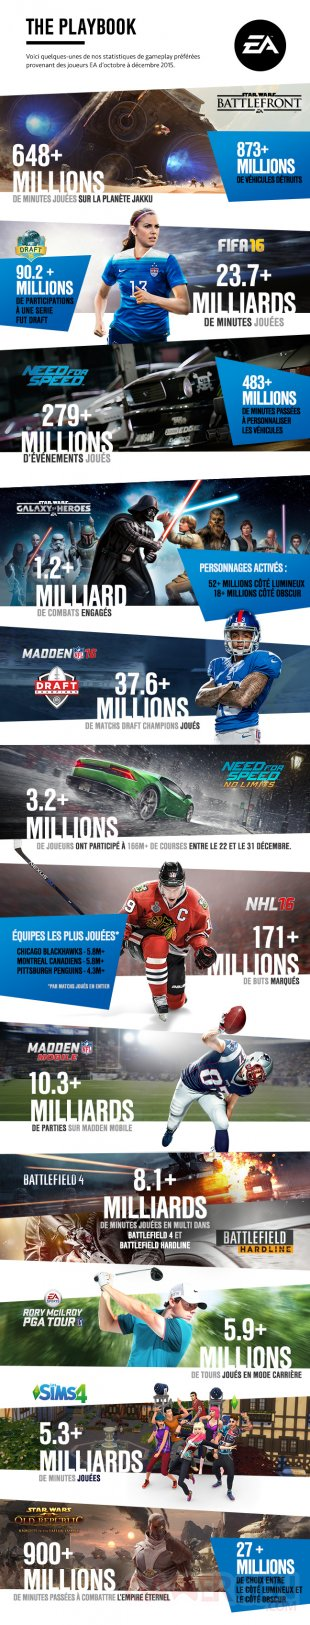 Electronic Arts infographie 2015